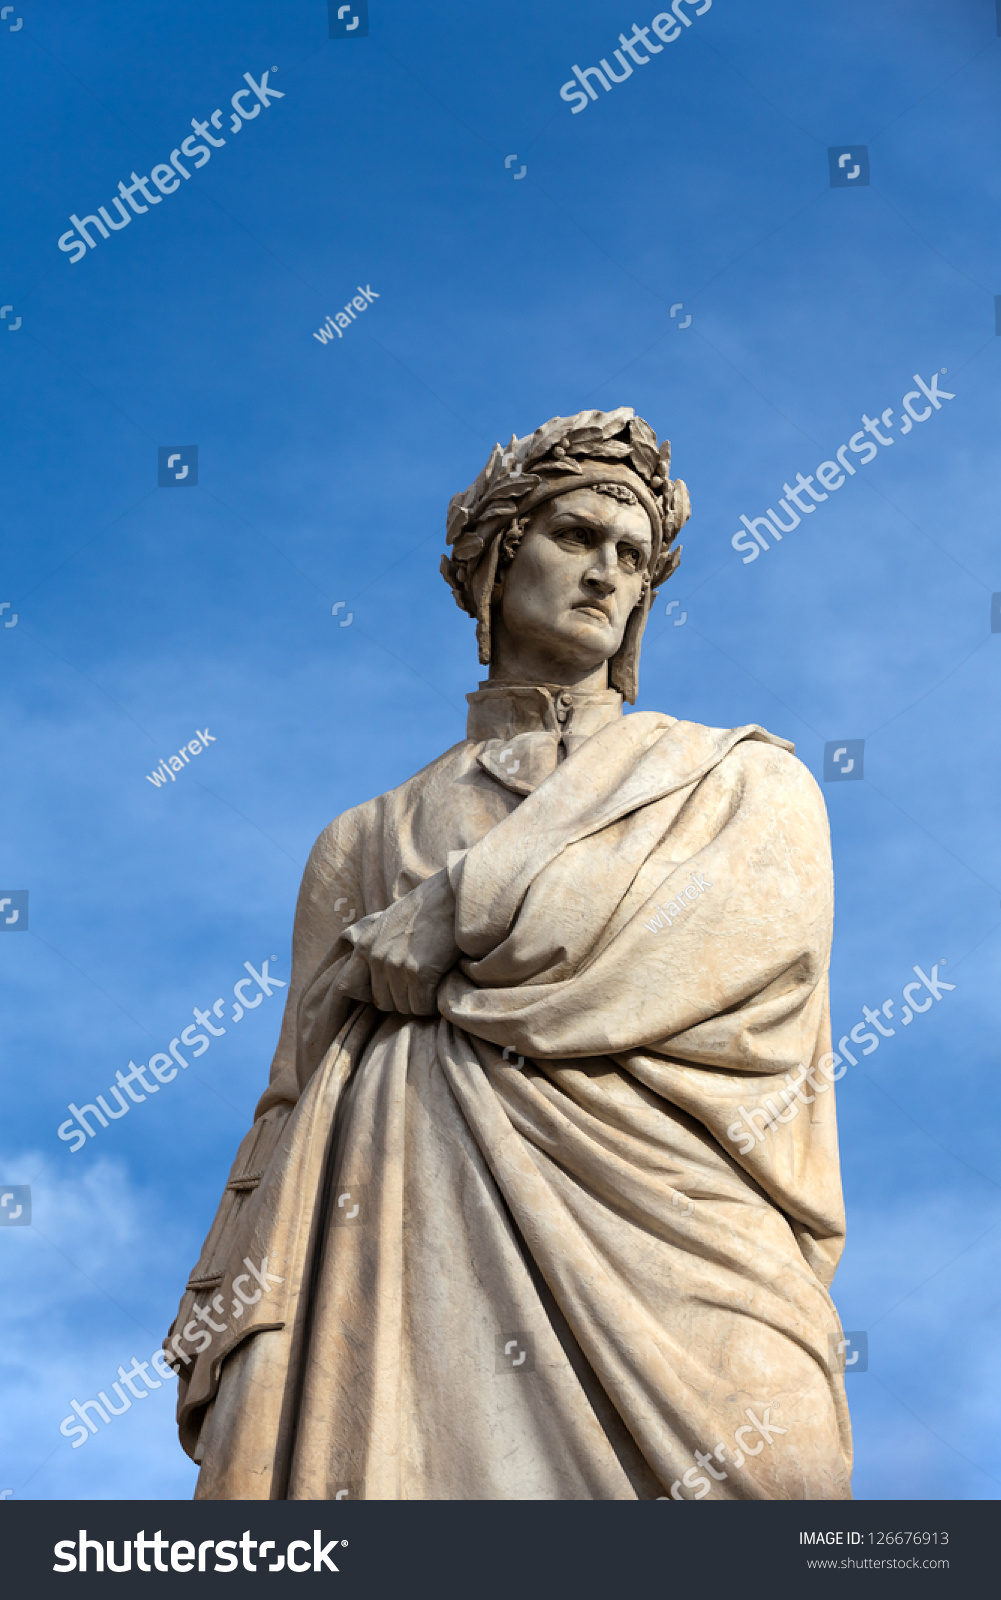 dante aligheri an influential poet in early literature Dante alighieri is considered the greatest italian poet and one of the greatest of european and world literature he is best known for the epic poem commedia, later named la divina commedia.